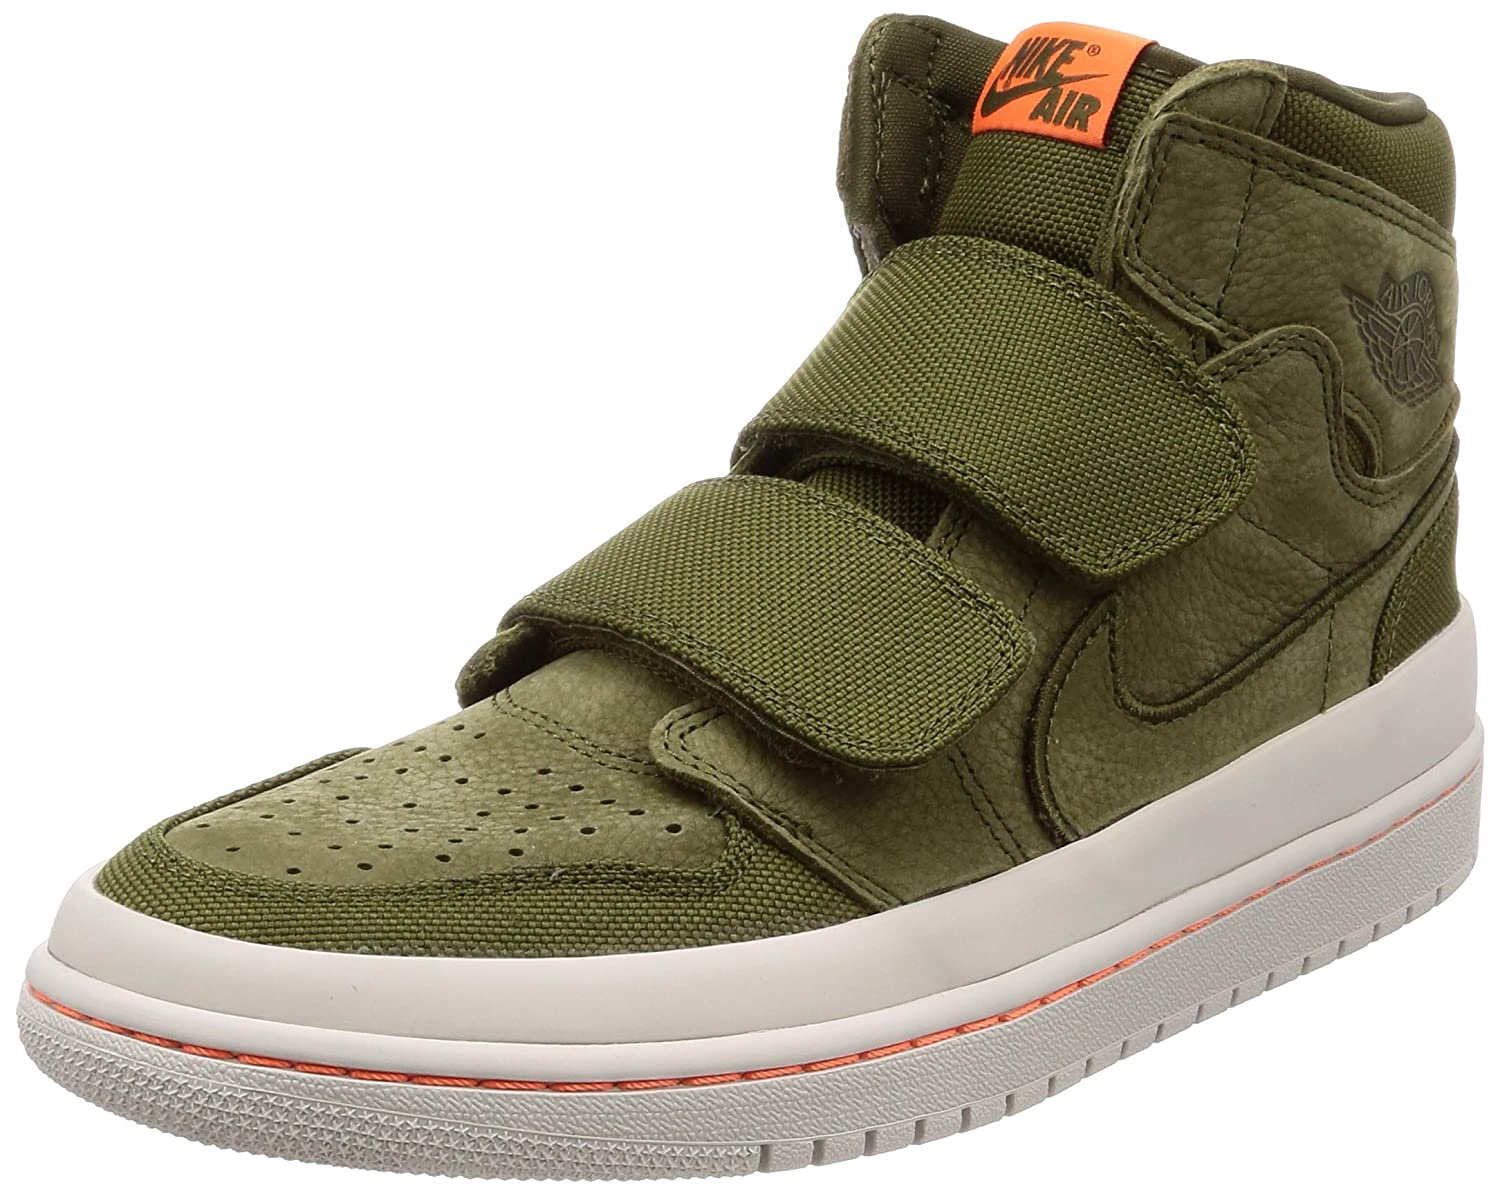 outlet store e5322 e6bf9 Amazon.com   Jordan Air 1 Retro High Double Strap   Basketball